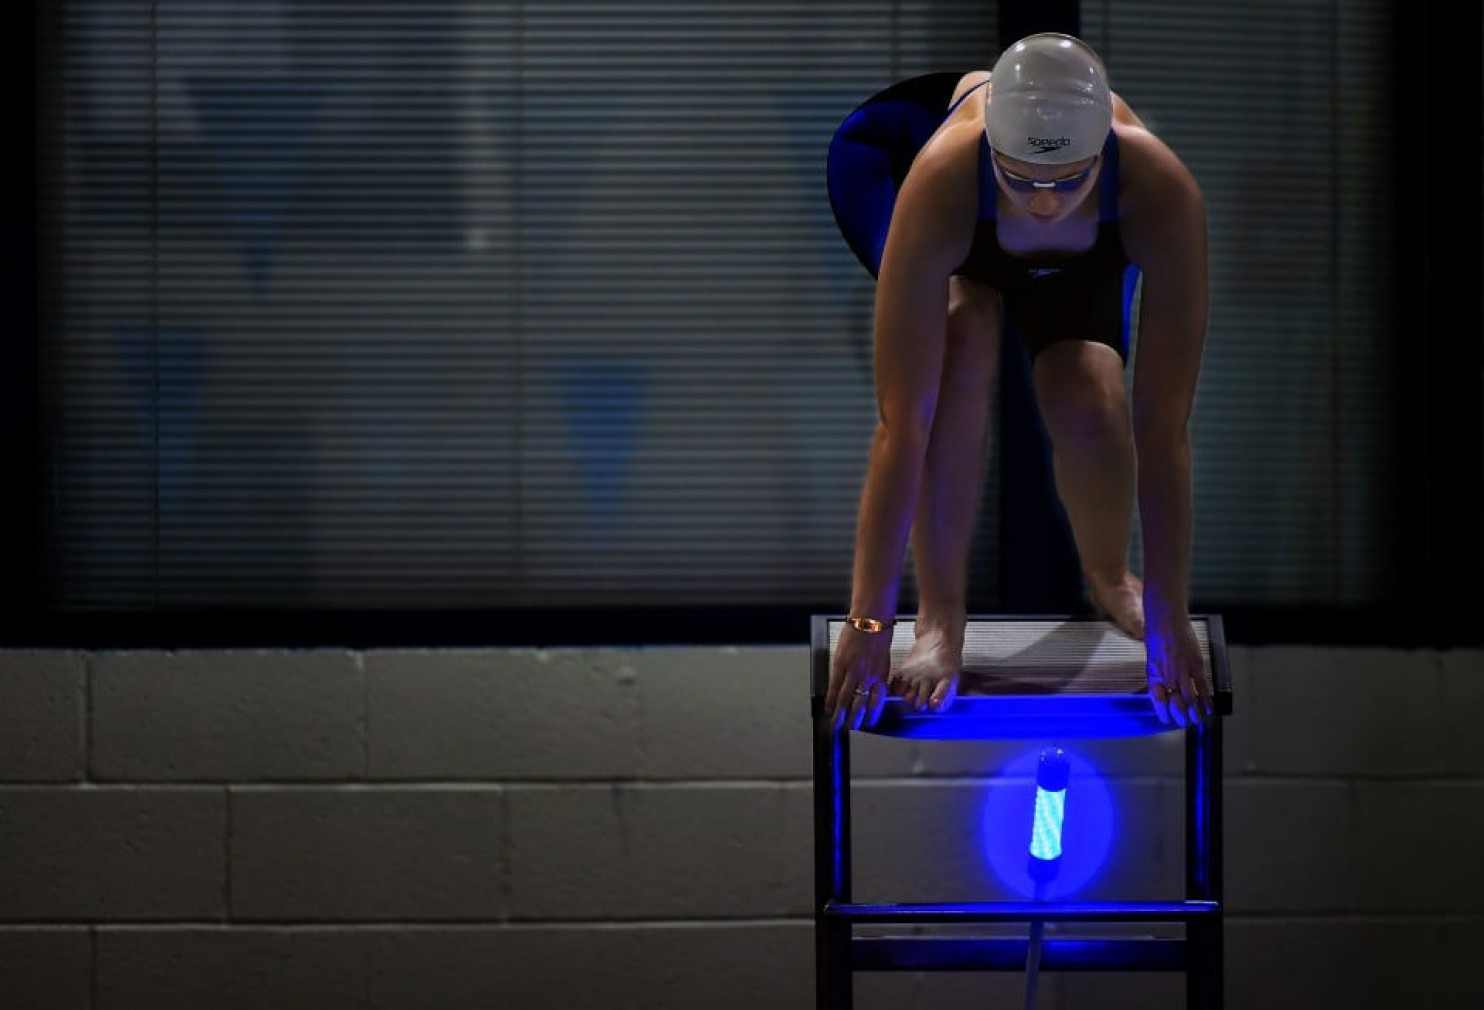 Gallaudet swimmer Faye Frex-Albrecht takes her mark on a starting block outfitted with a Reaction Light System, which helps level the field between hearing and non-hearing competitors. MUST CREDIT: Washington Post photo by Katherine Frey.